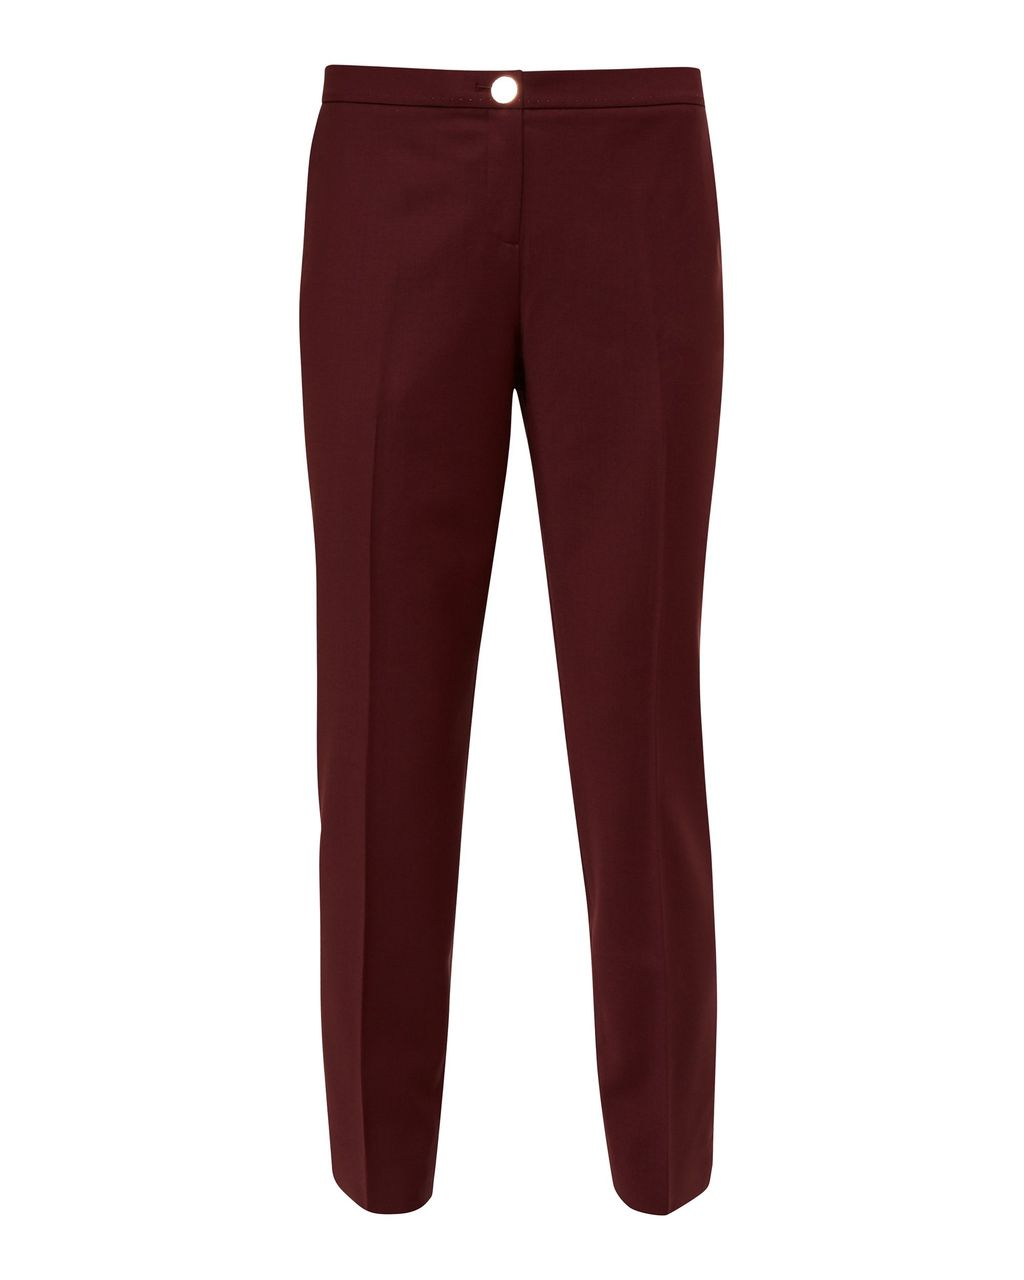 Delihat Straight Leg Trousers, Red - length: standard; pattern: plain; waist: mid/regular rise; predominant colour: burgundy; occasions: work; fibres: wool - mix; fit: straight leg; pattern type: fabric; texture group: woven light midweight; style: standard; season: s/s 2016; wardrobe: highlight